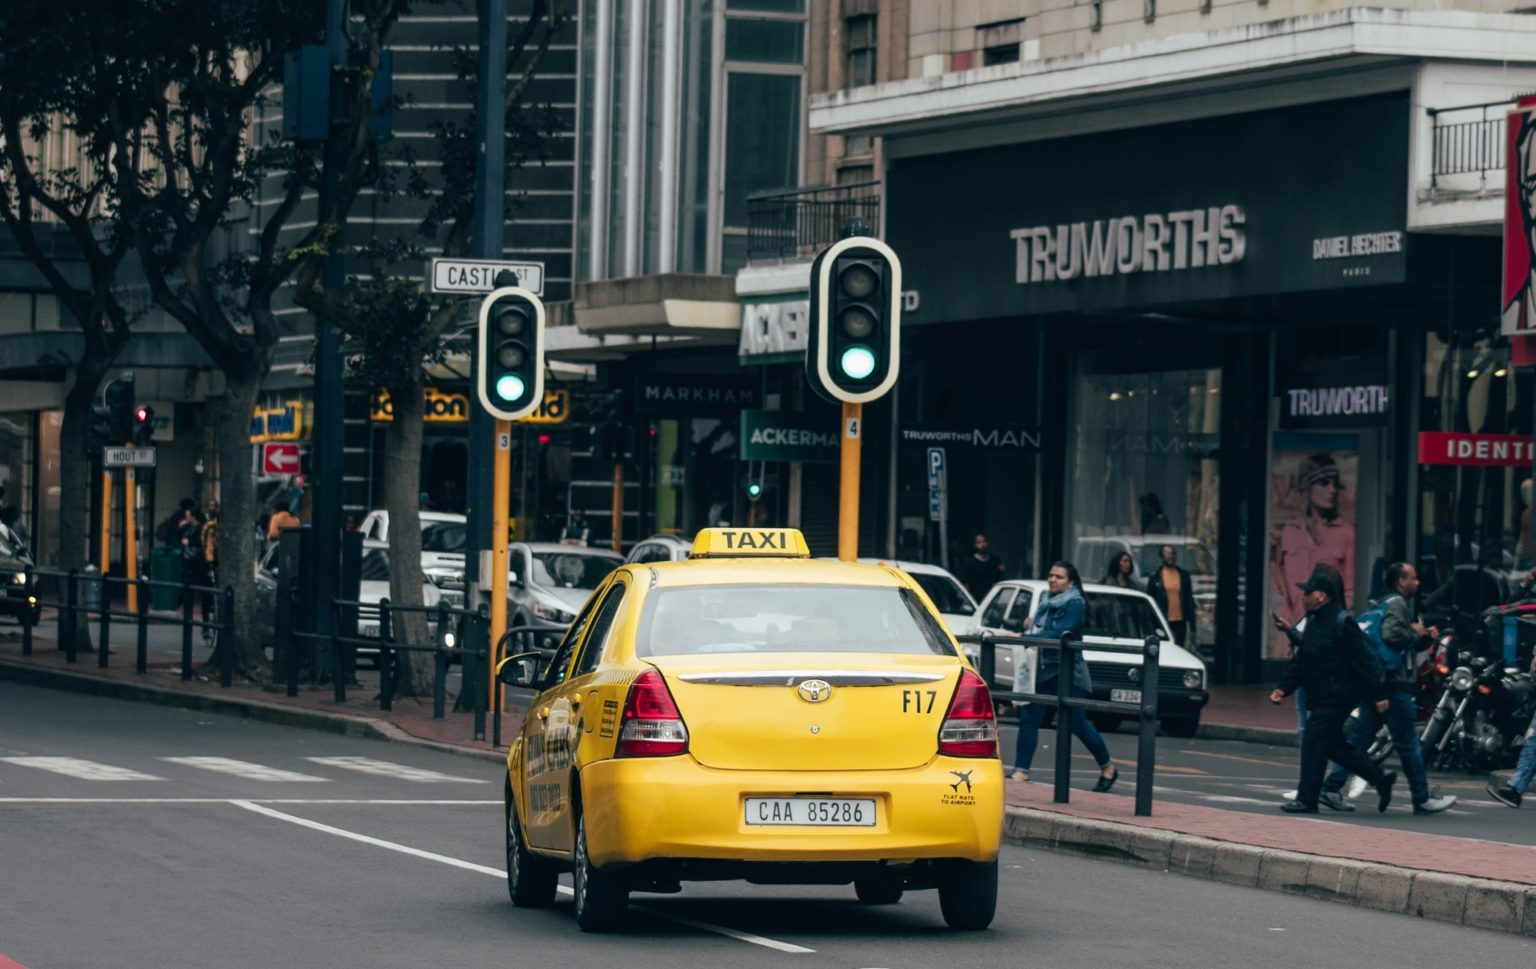 Metered taxi in Cape Town